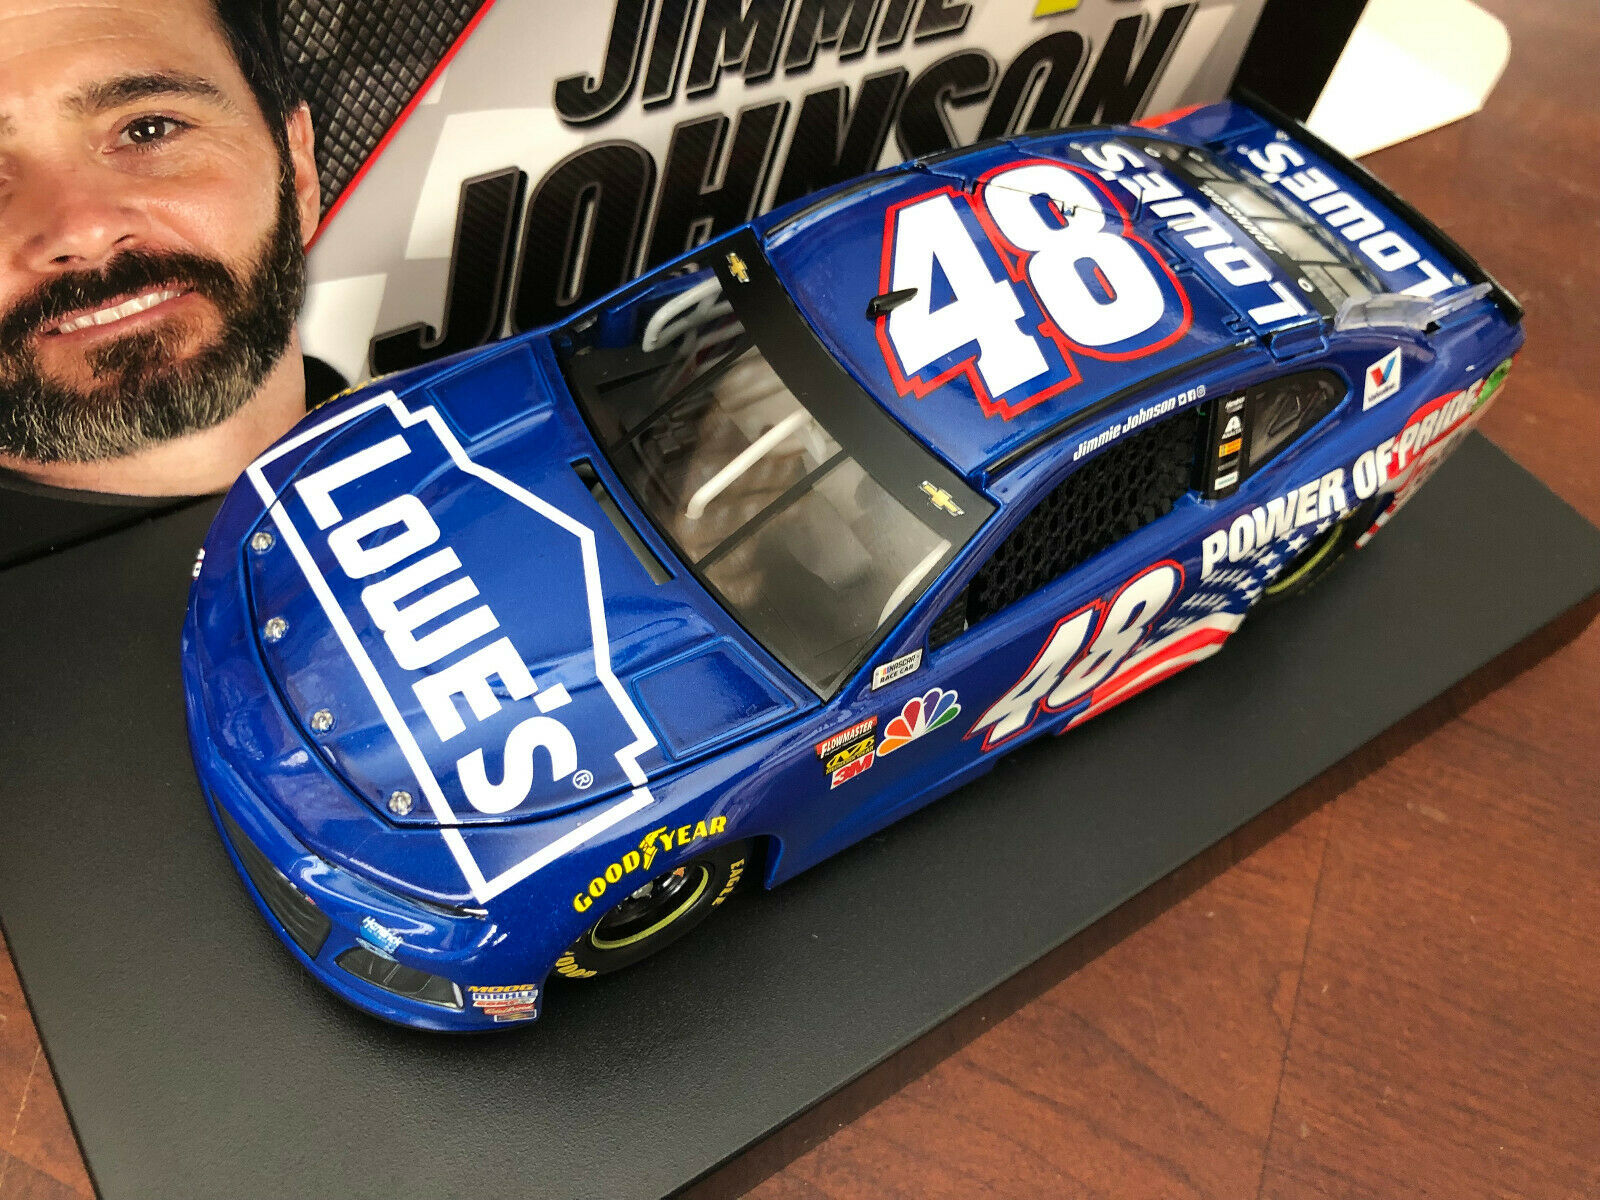 2018 Jimmie Johnson Lowes Power of Pride 2001 Tribute w  Ally ARC car 1 of 421